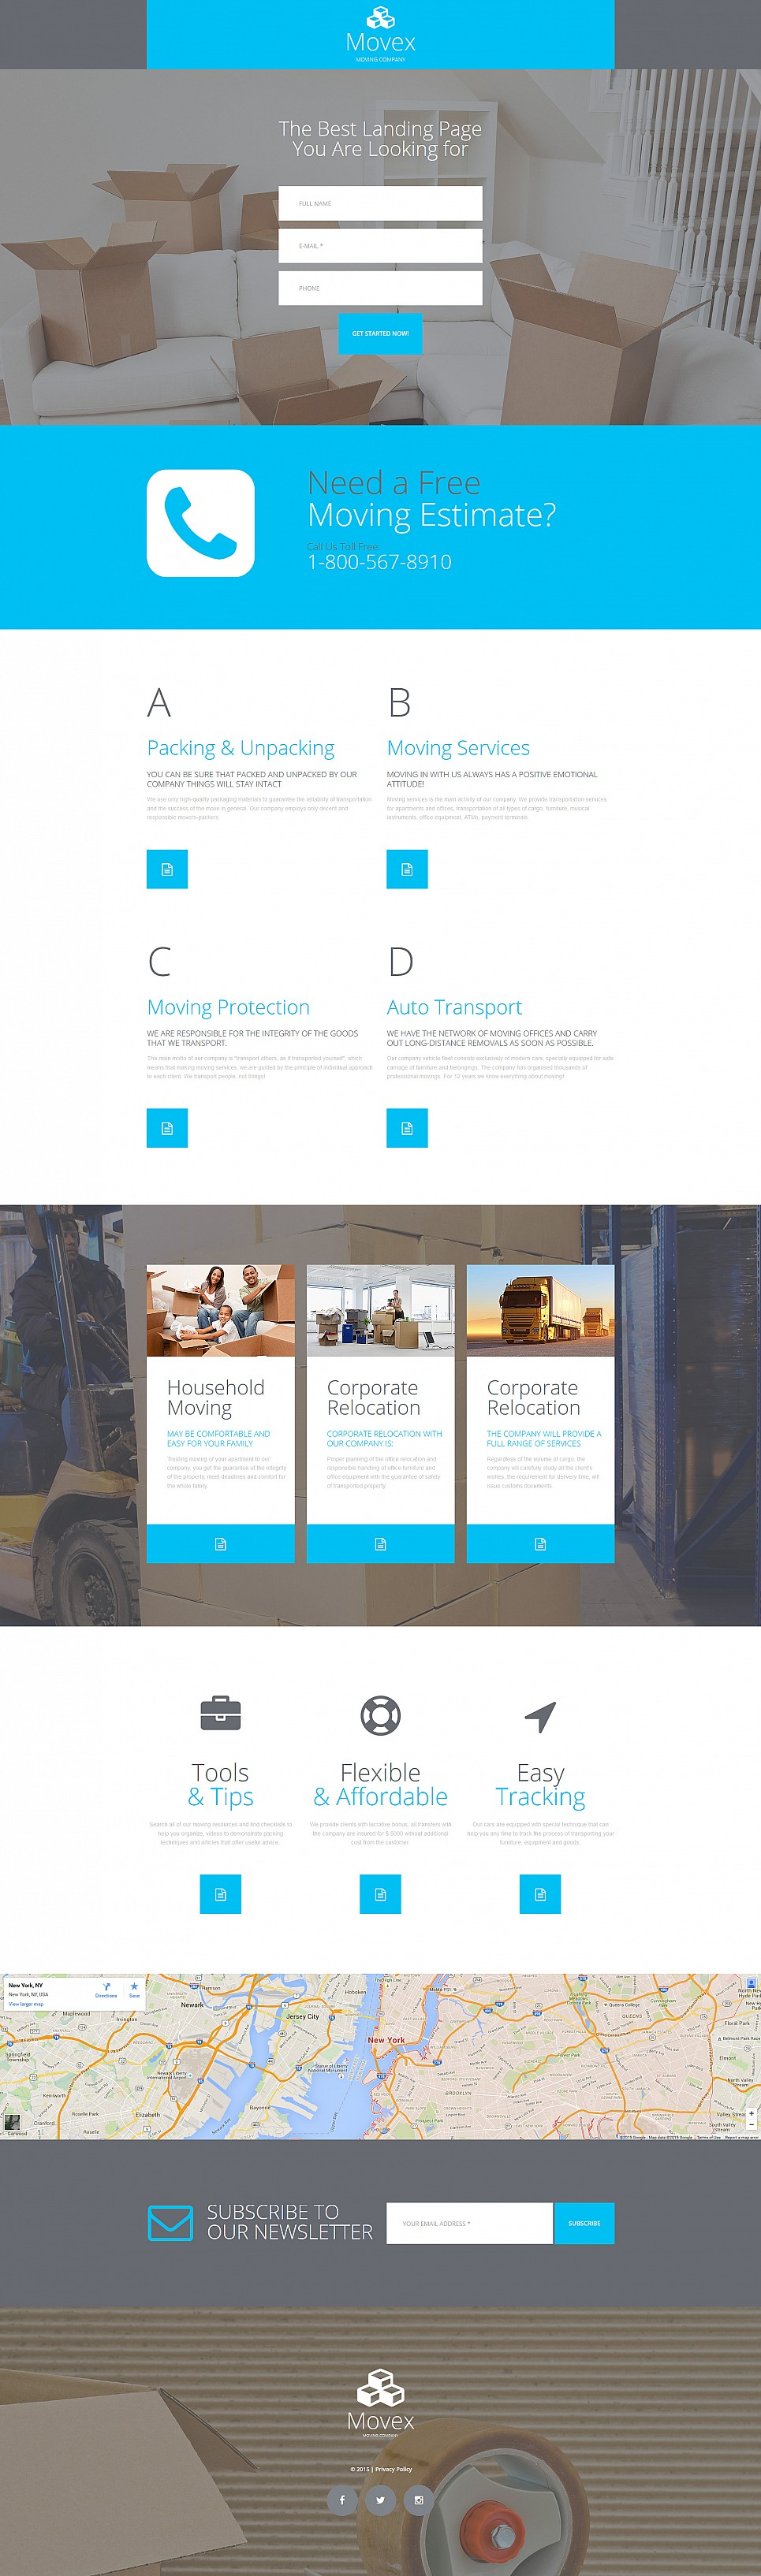 Blue and white design for courier website